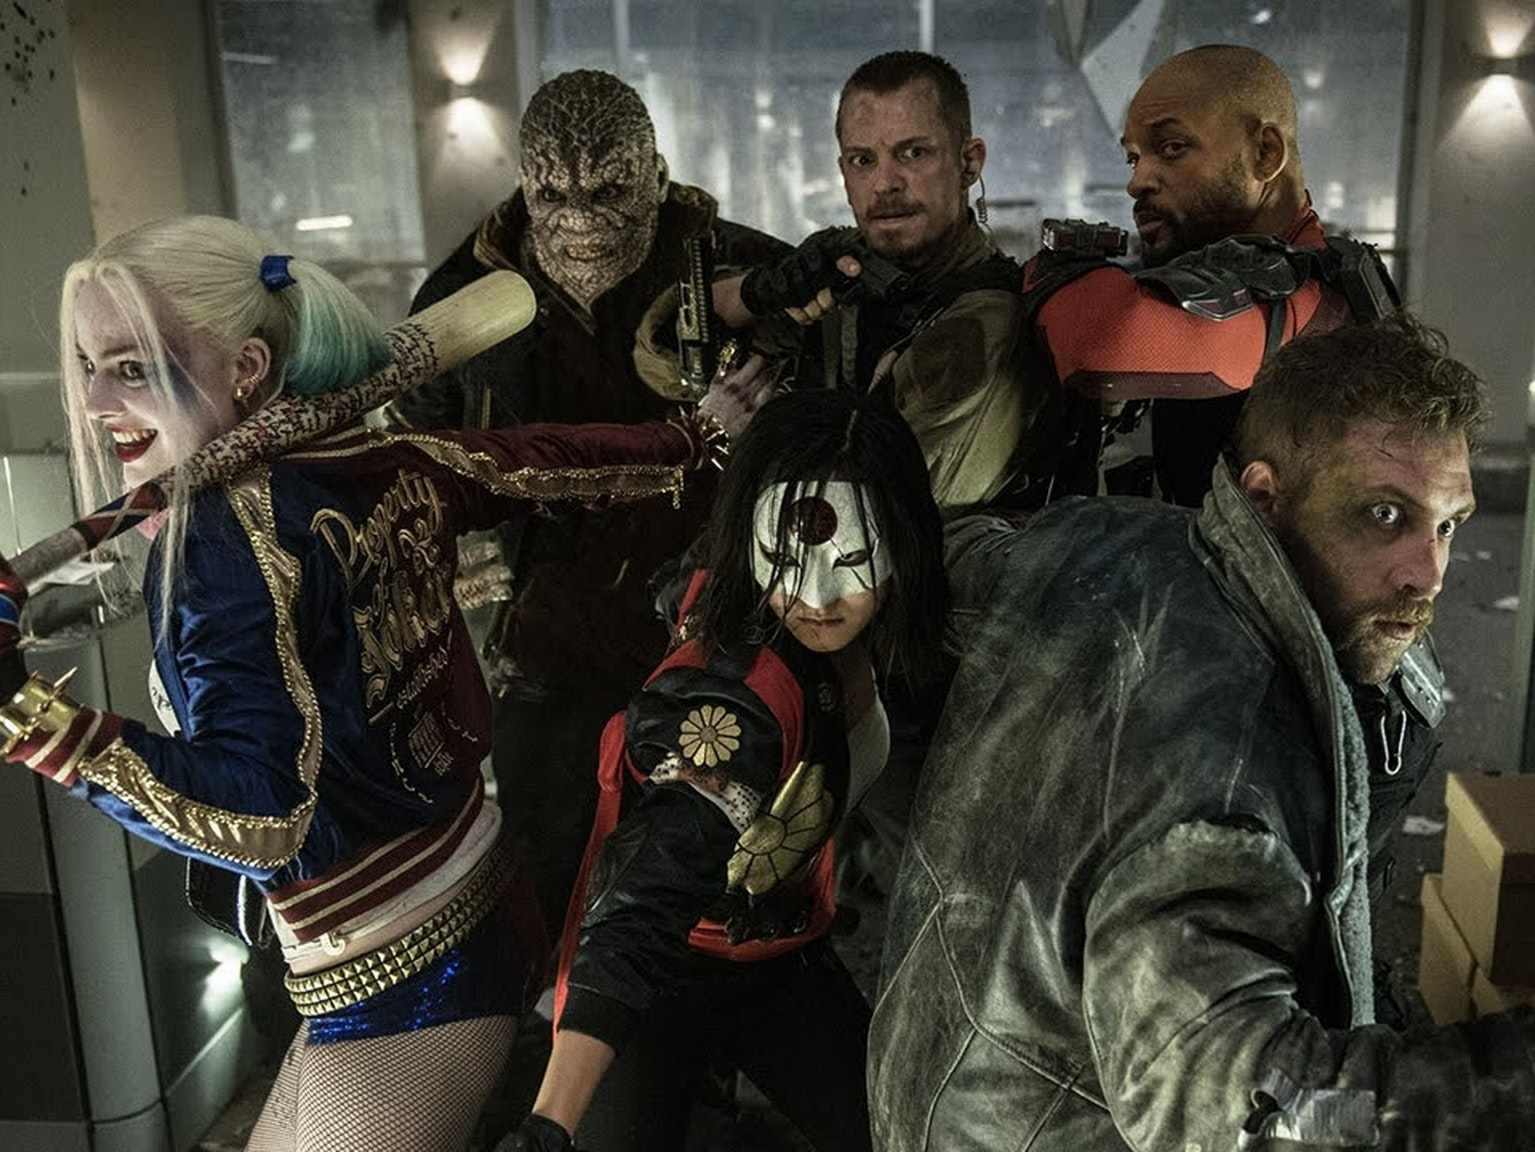 'Suicide Squad' Reviews Round-up: These Anti-Heroes Are Bad